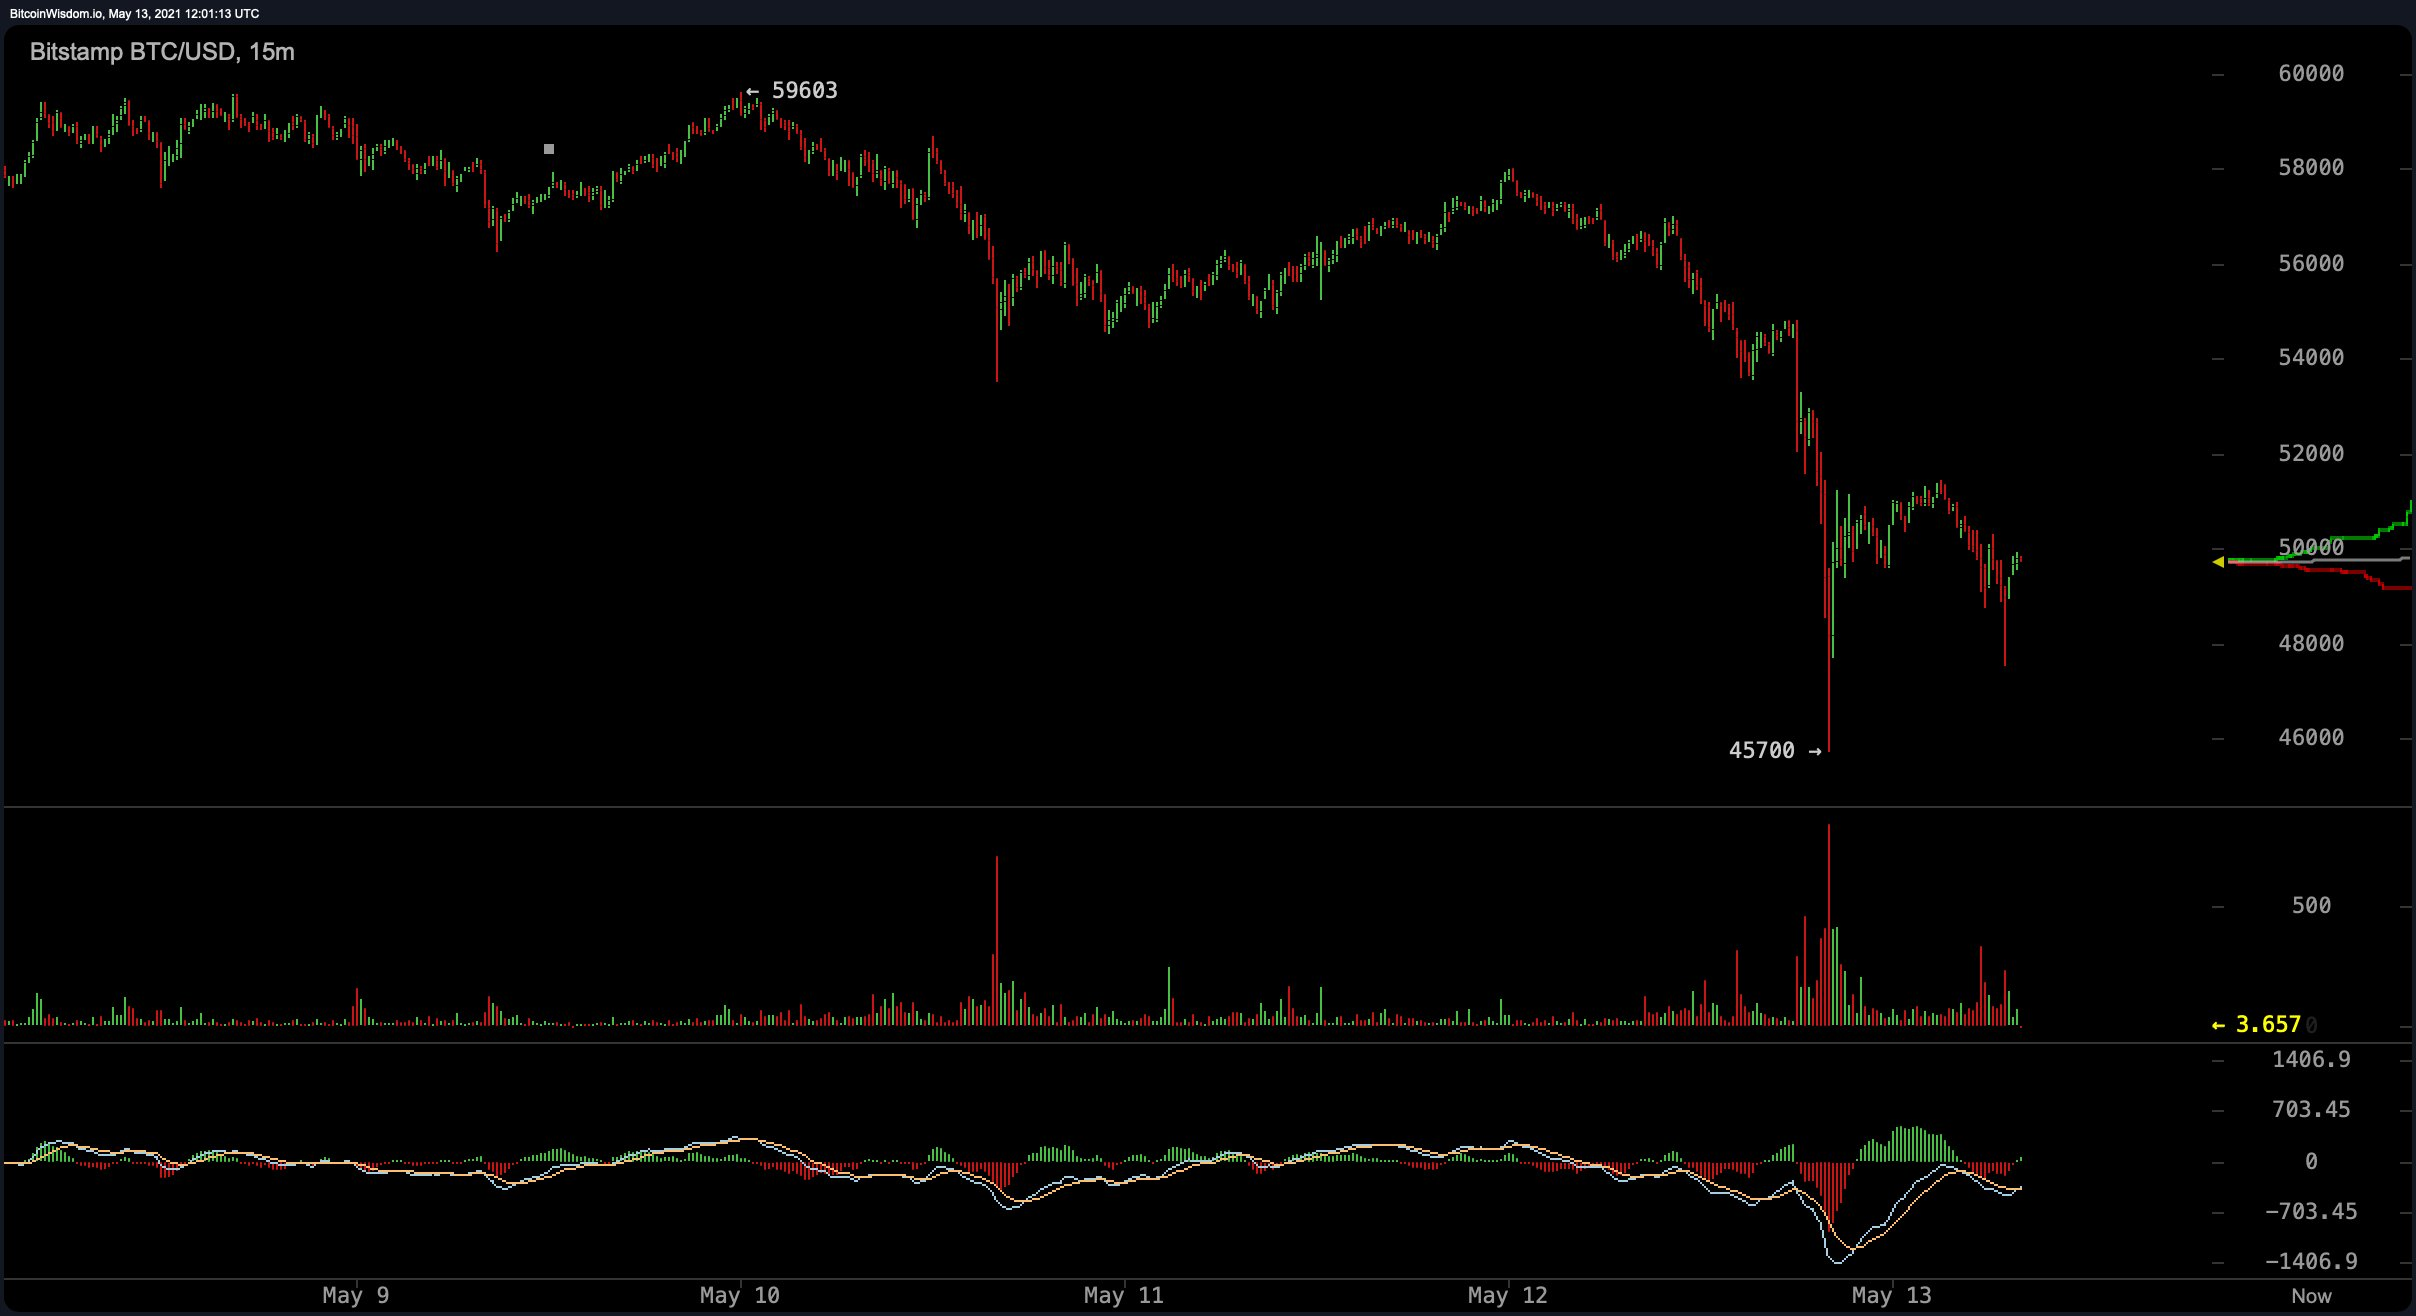 Bitcoin Markets Blood Red After Tesla Announcement, Crypto Economy Sheds Billions